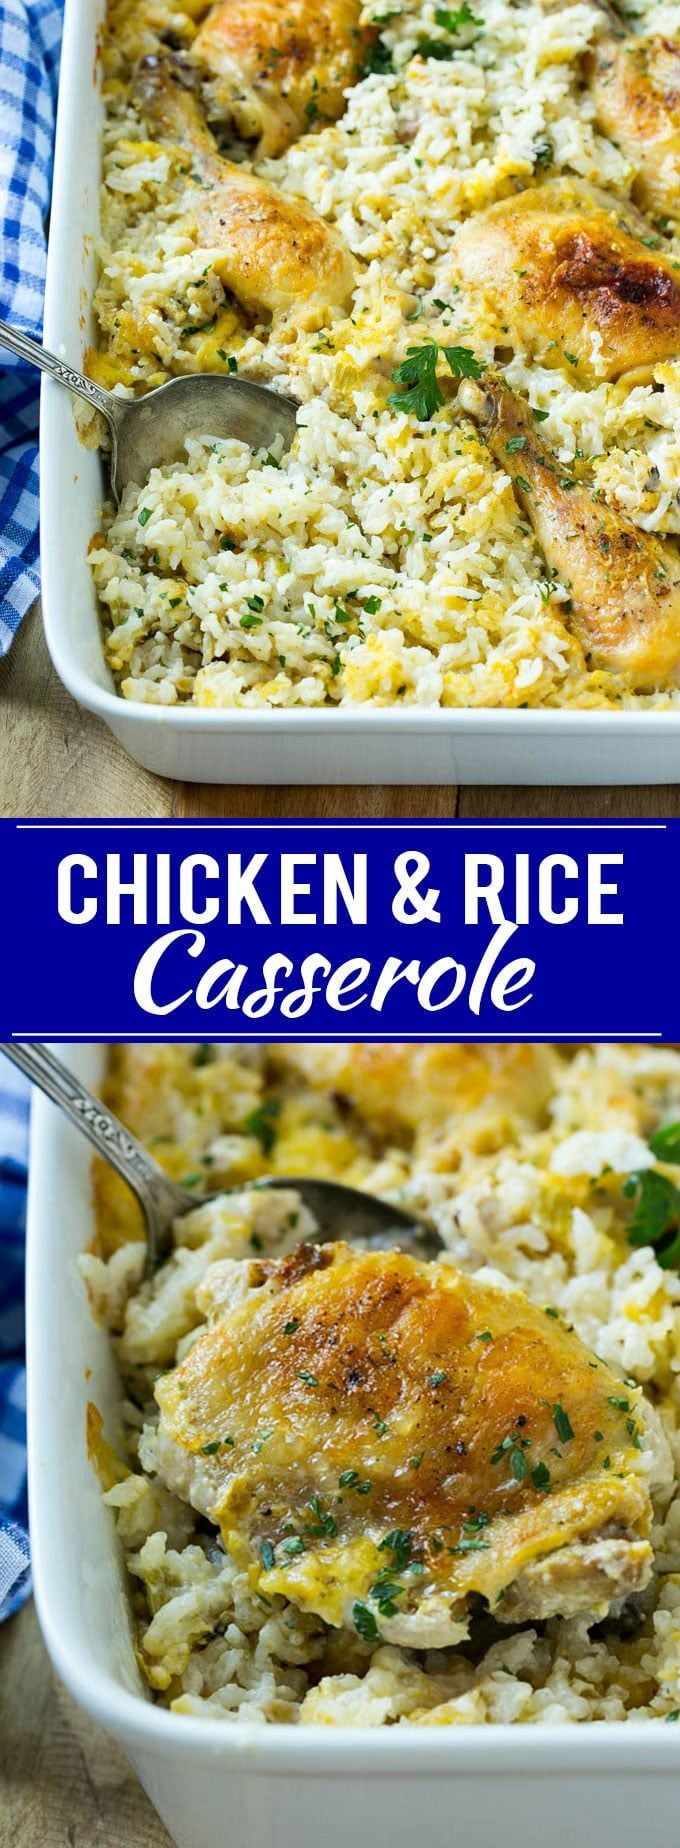 Chicken and Rice Baked Casserole